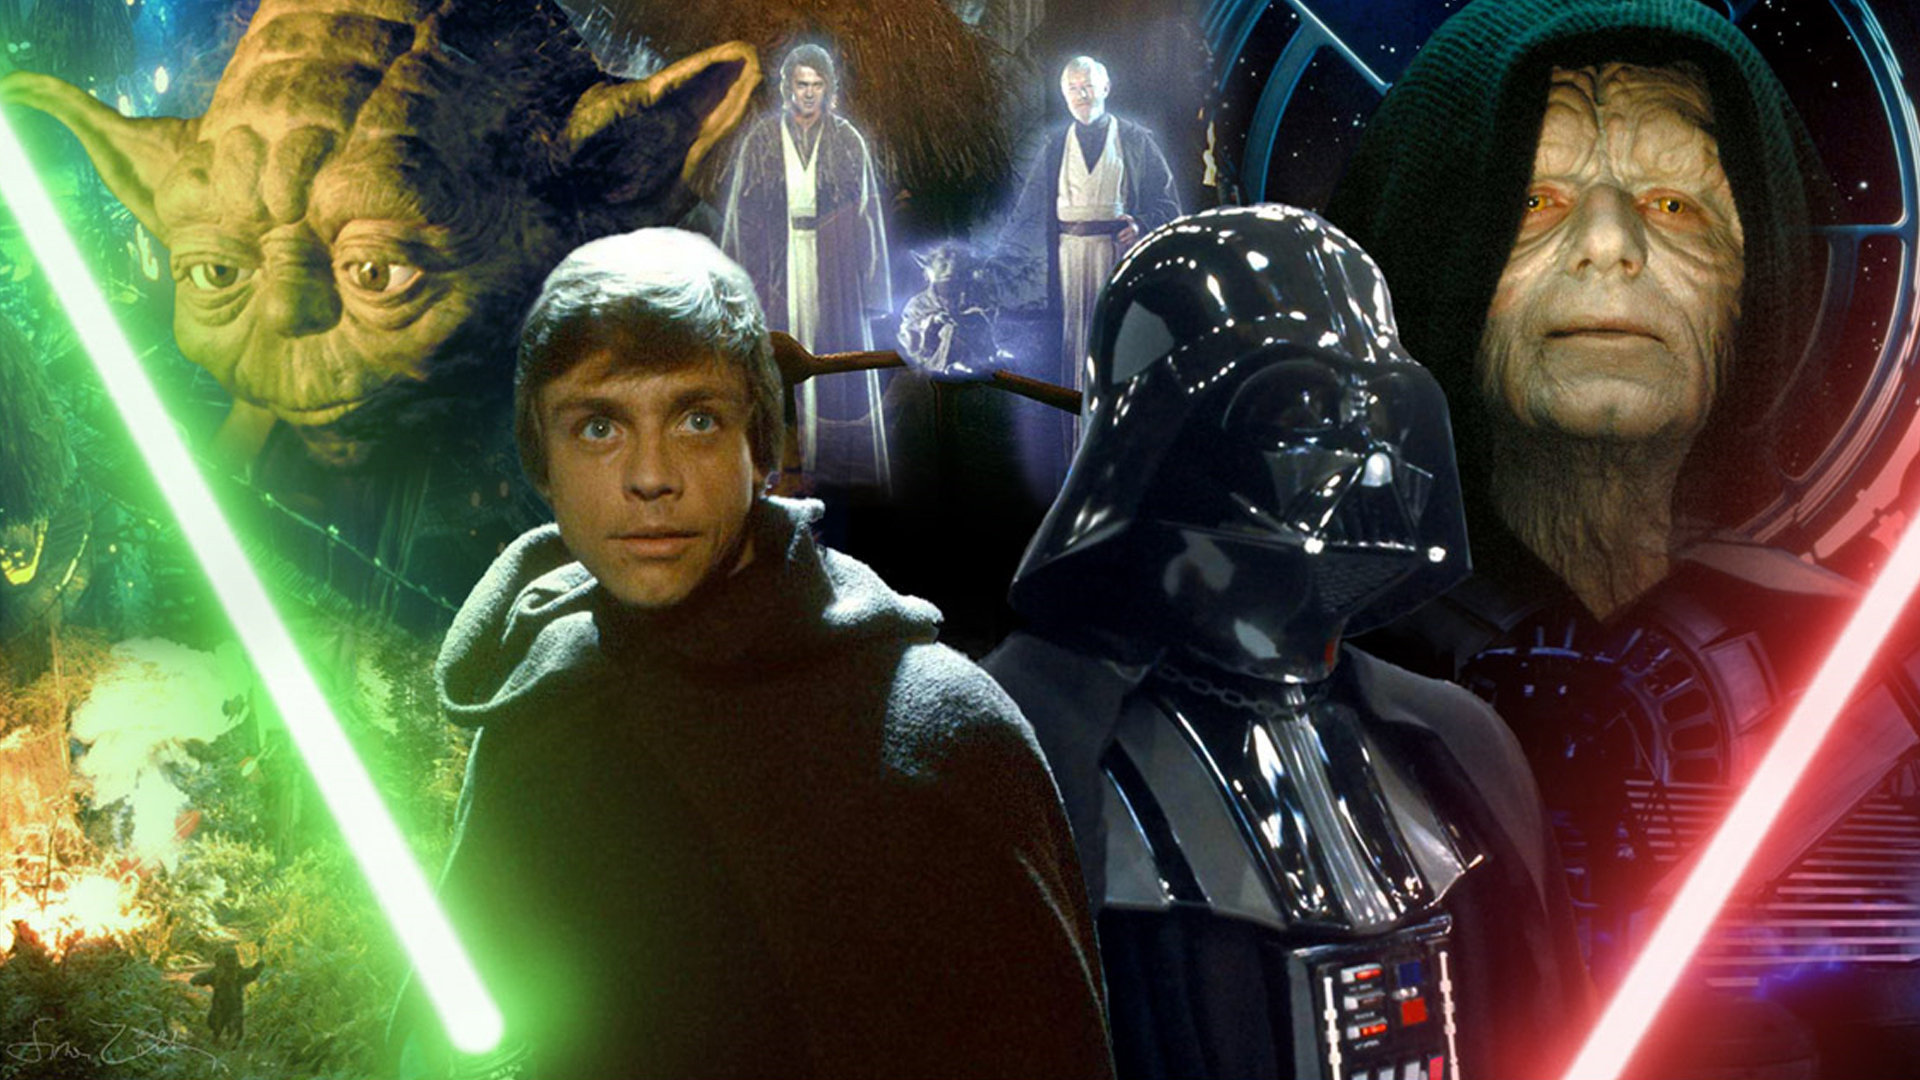 Best Star Wars Episode 6 (VI): Return Of The Jedi background ID:214789 for High Resolution full hd 1080p desktop